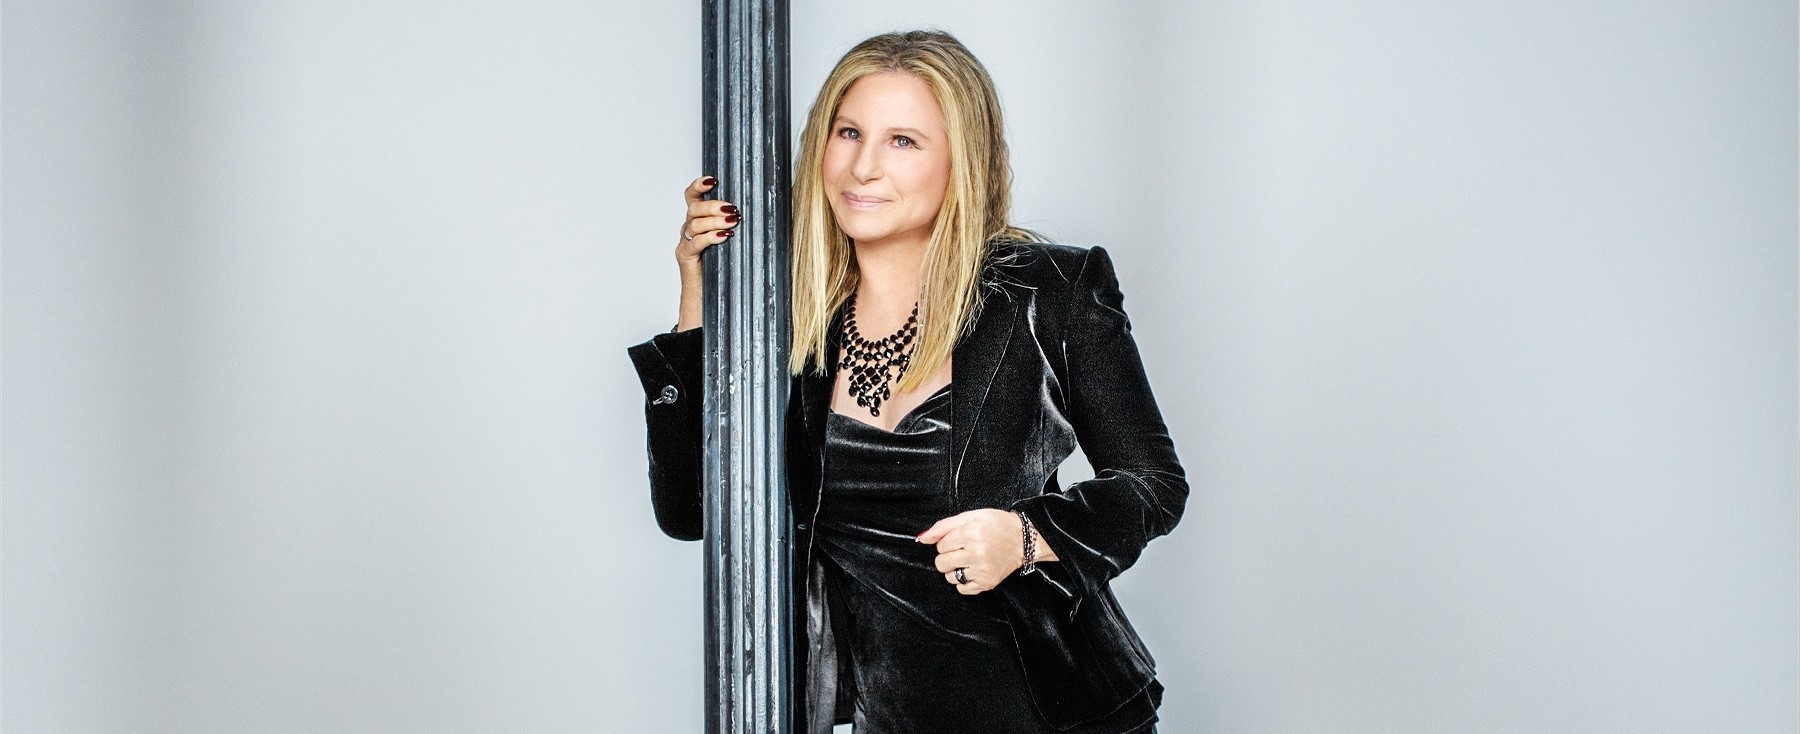 BARBRA STREISAND RELEASES NEW ALBUM 'ENCORE: MOVIE PARTNERS SING BROADWAY' OUT NOW!